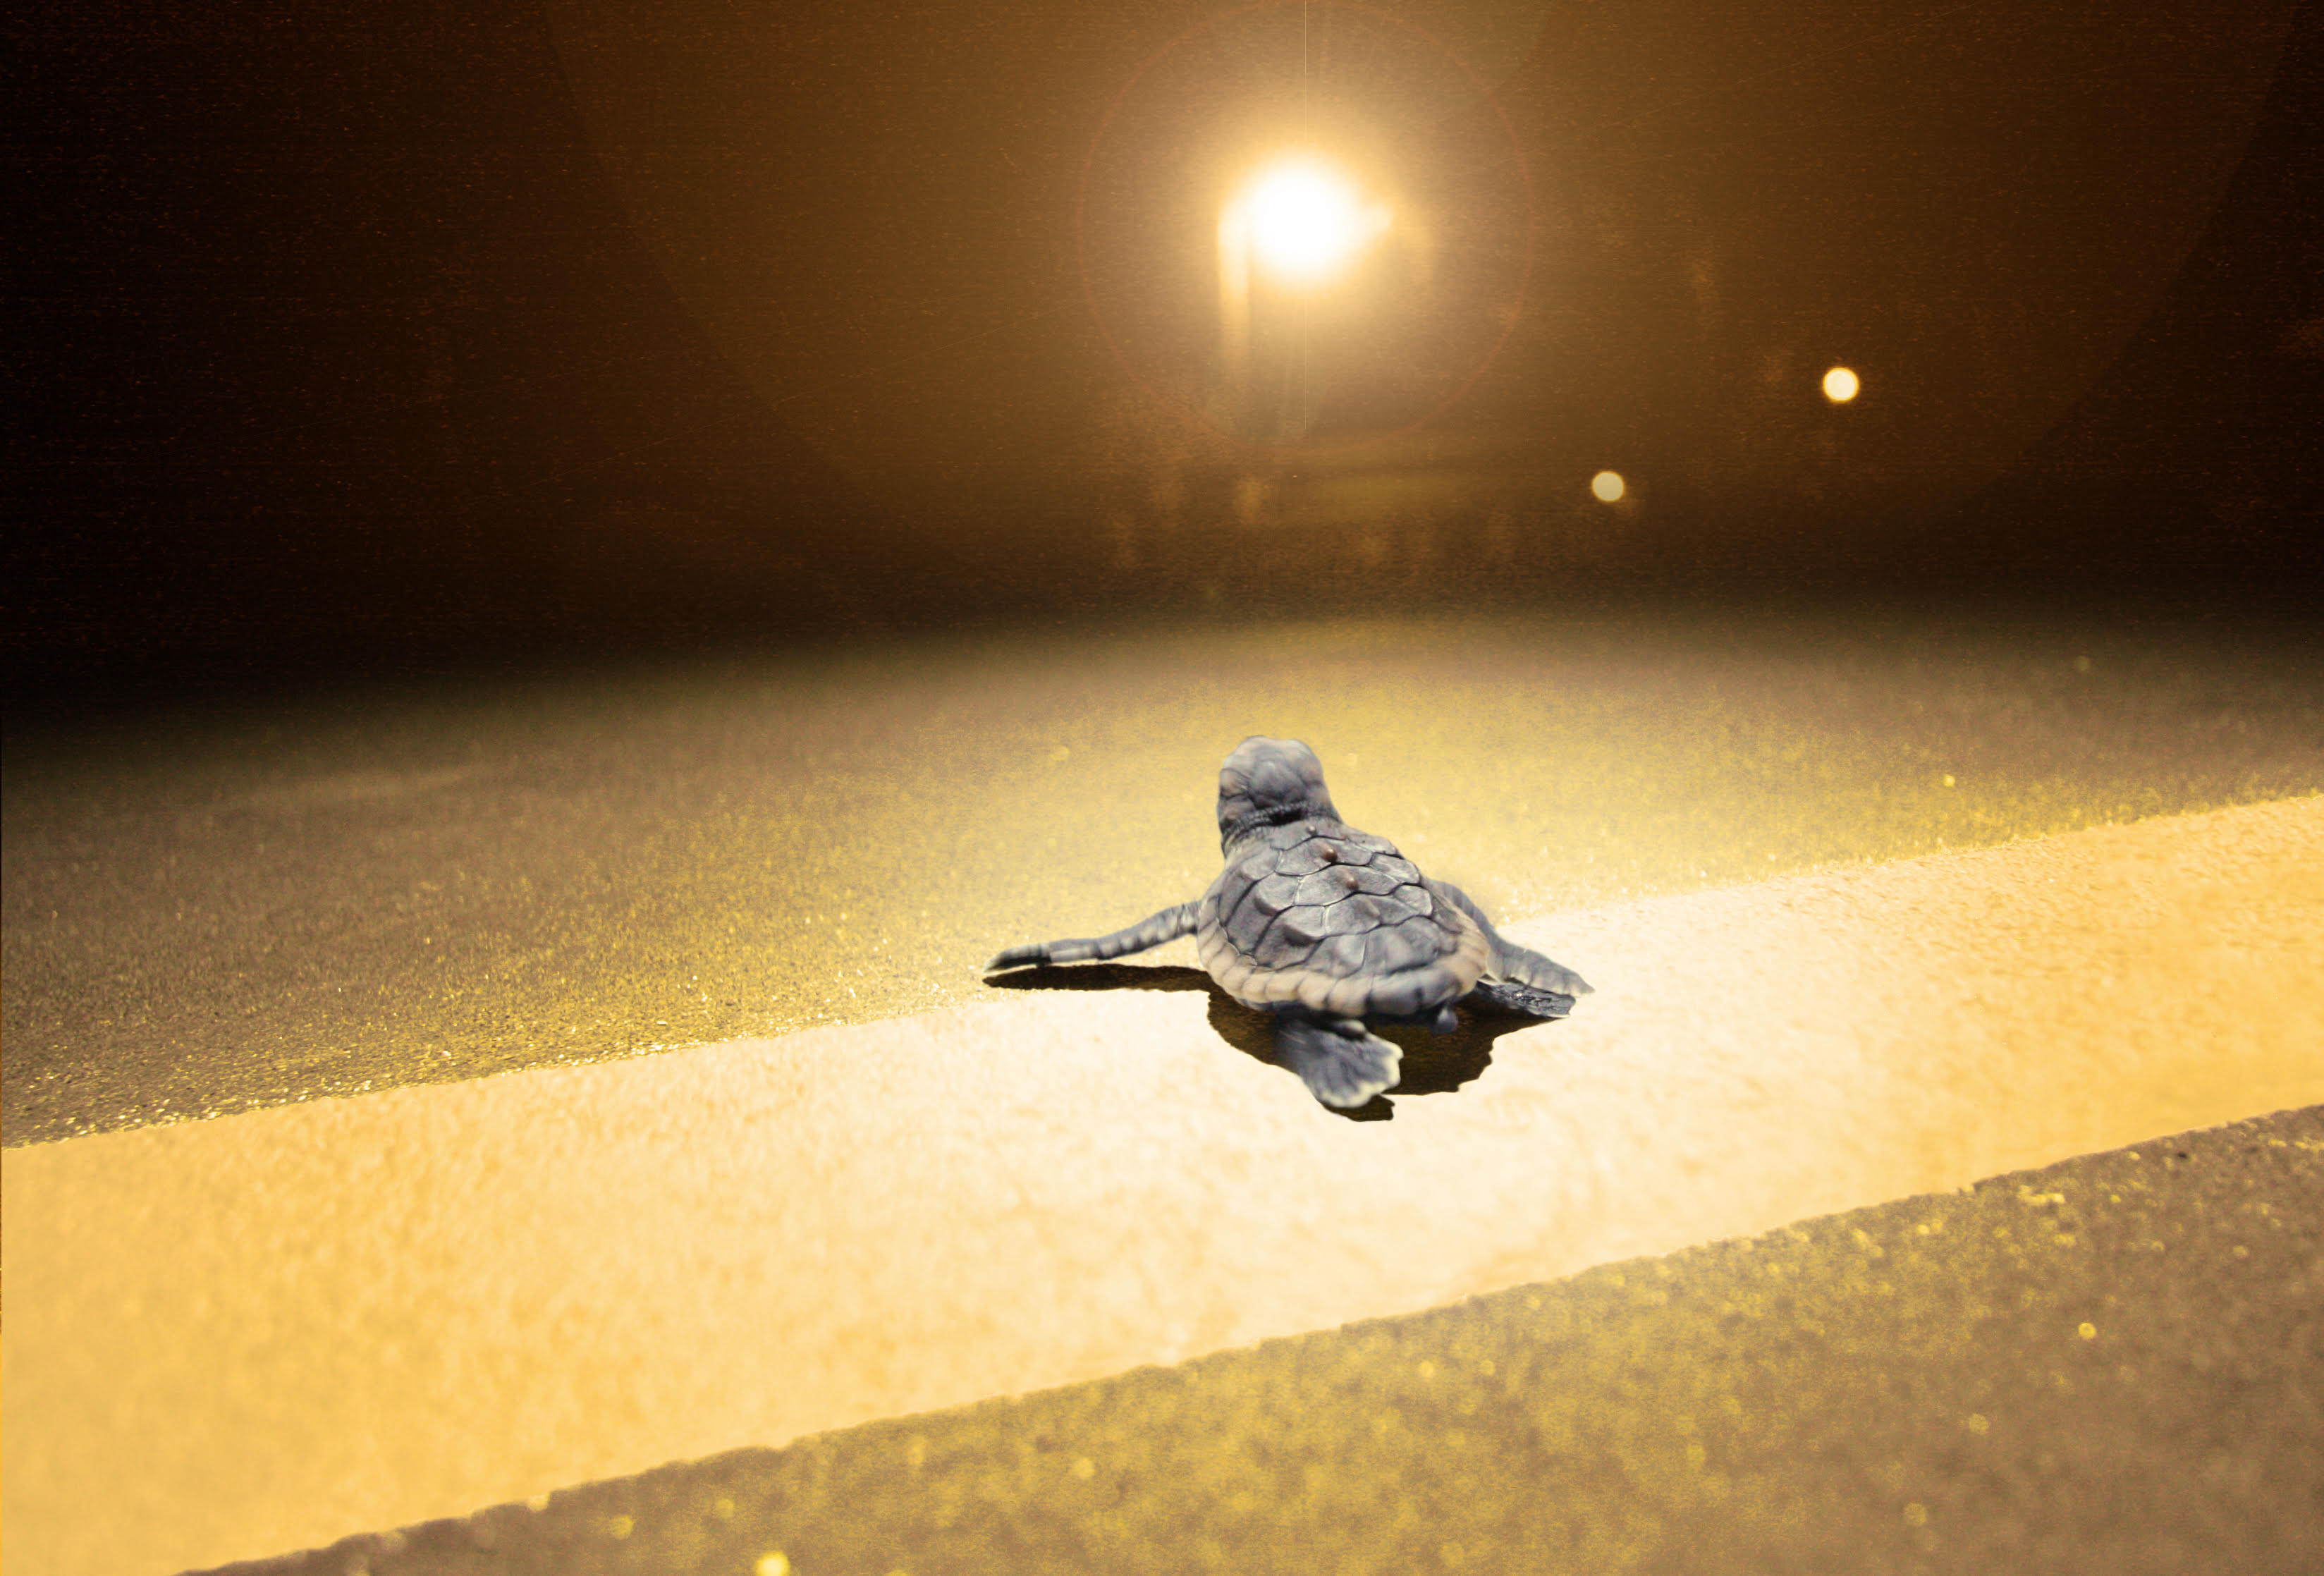 A hatchling loggerhead sea turtle in Florida, USA, moves away from the sea and toward high-pressure sodium roadway lighting.